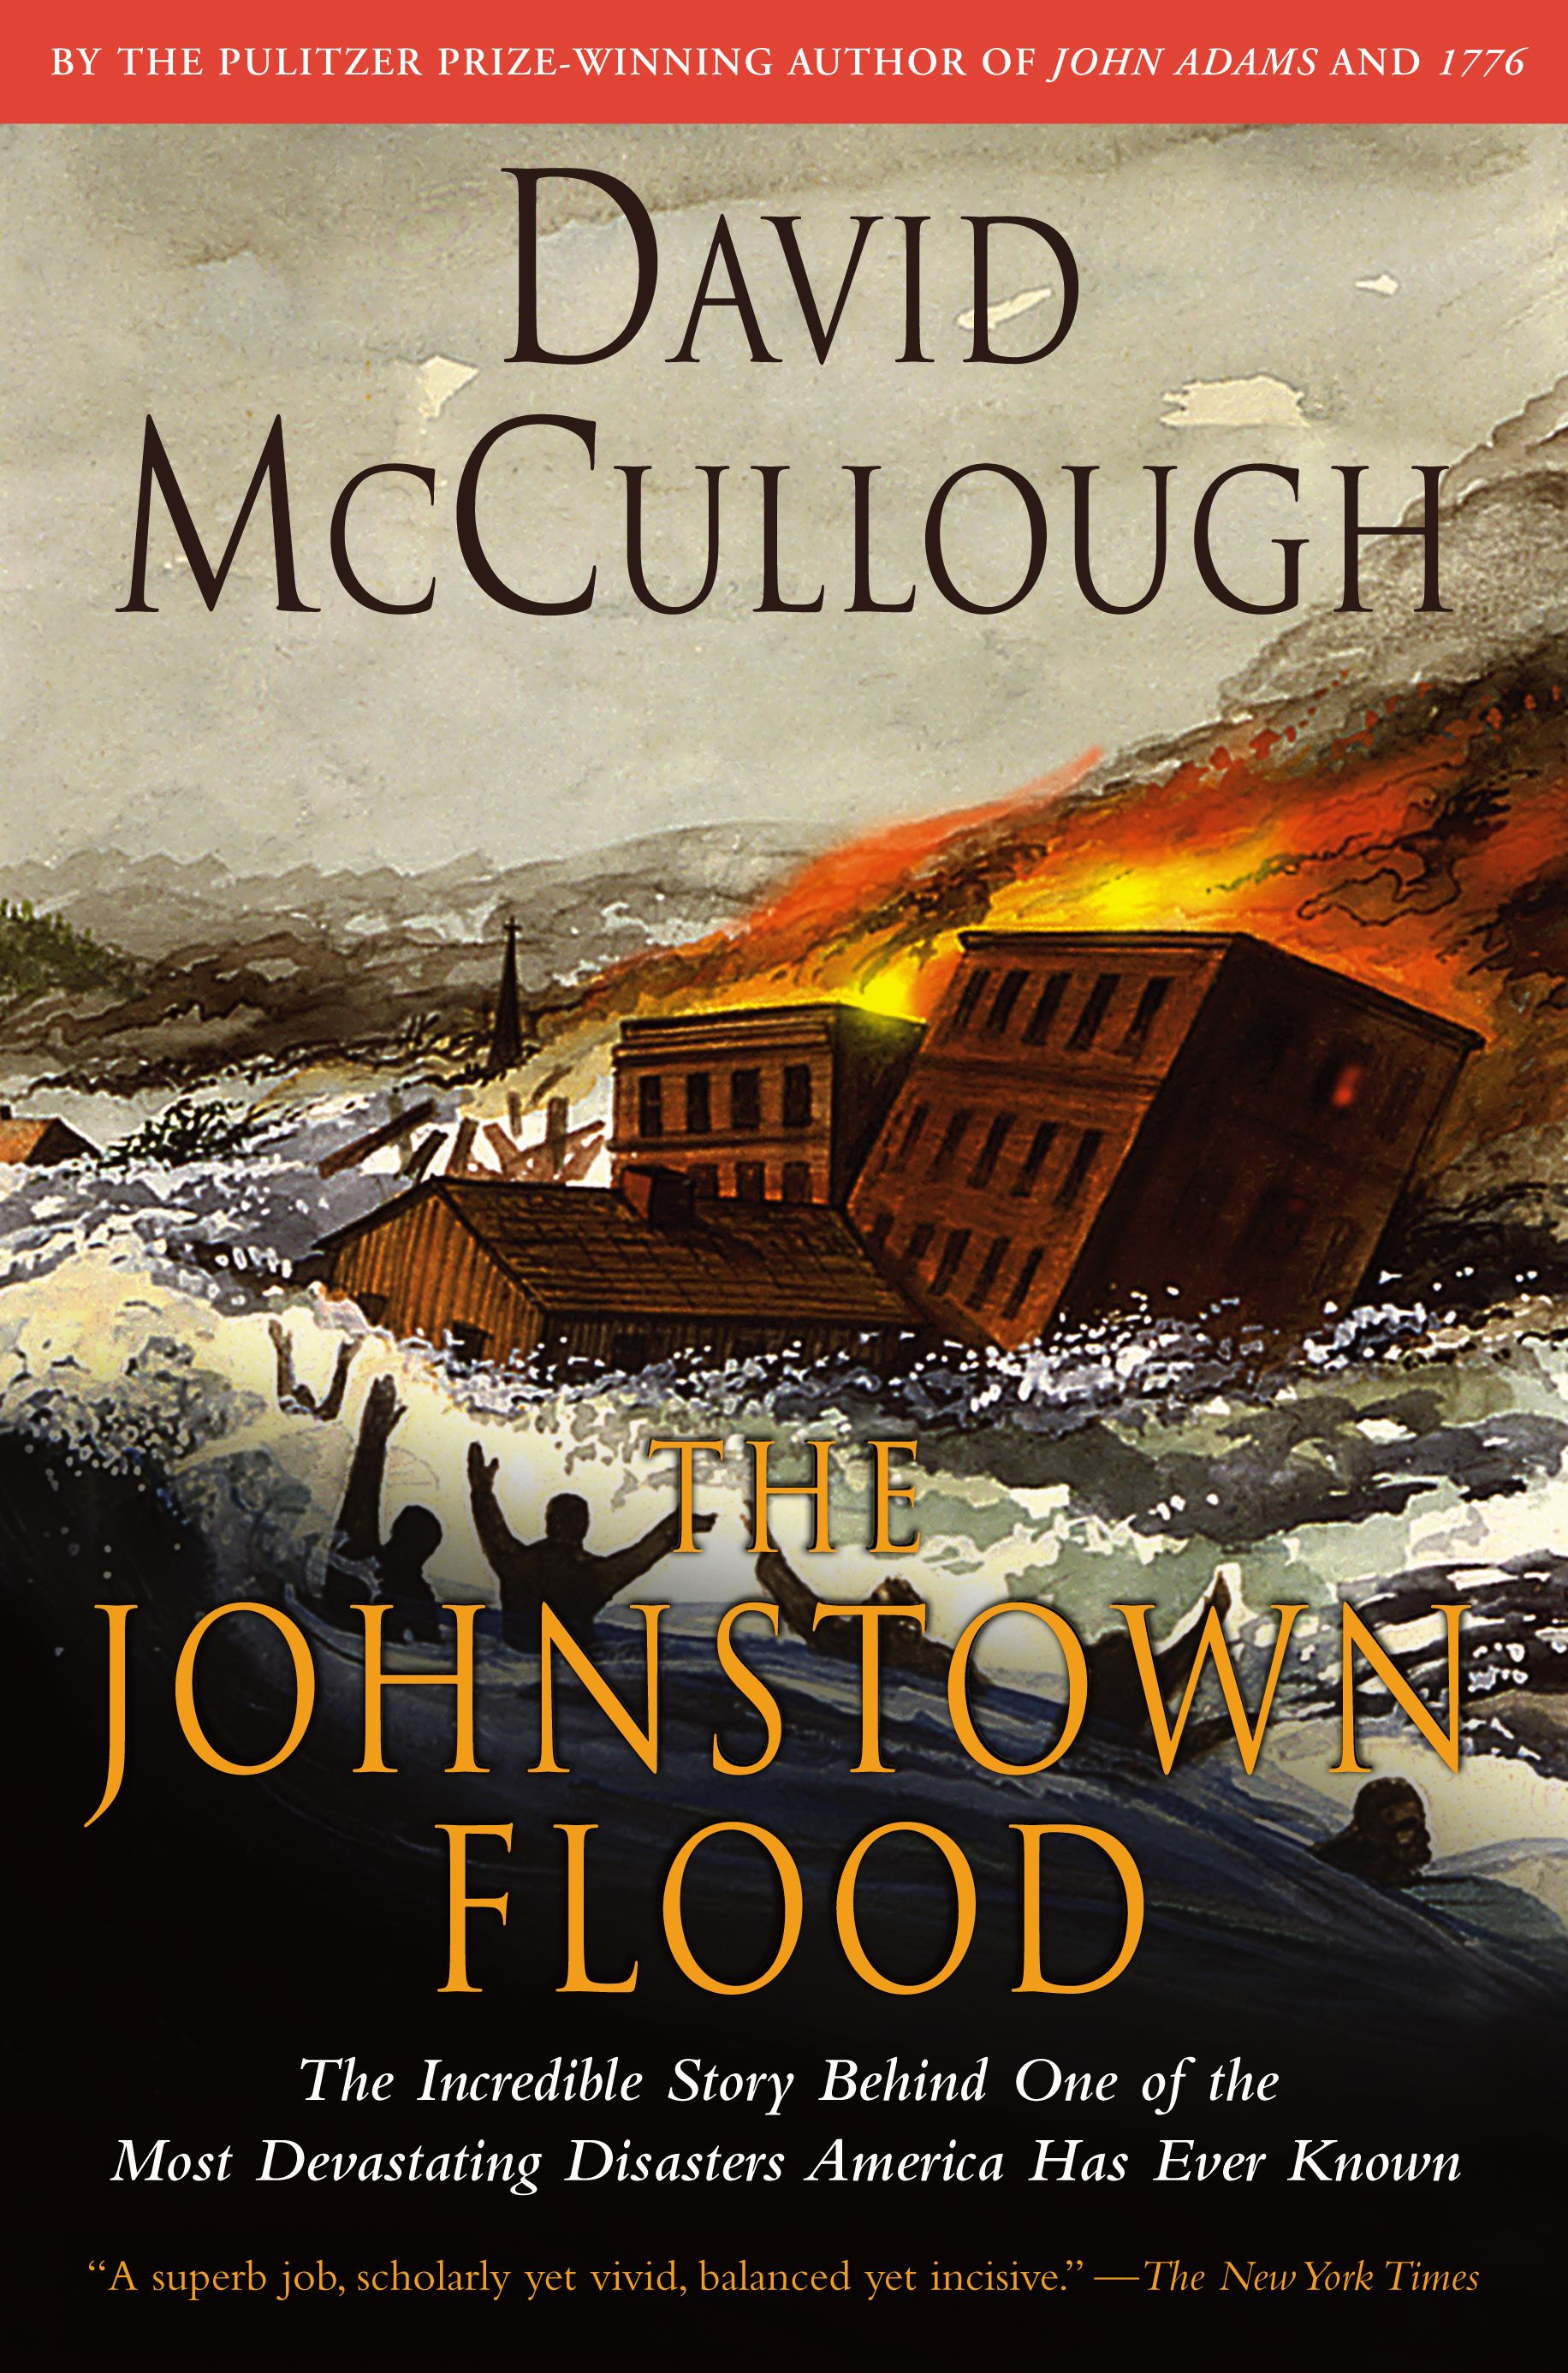 Image result for johnstown flood david mccullough